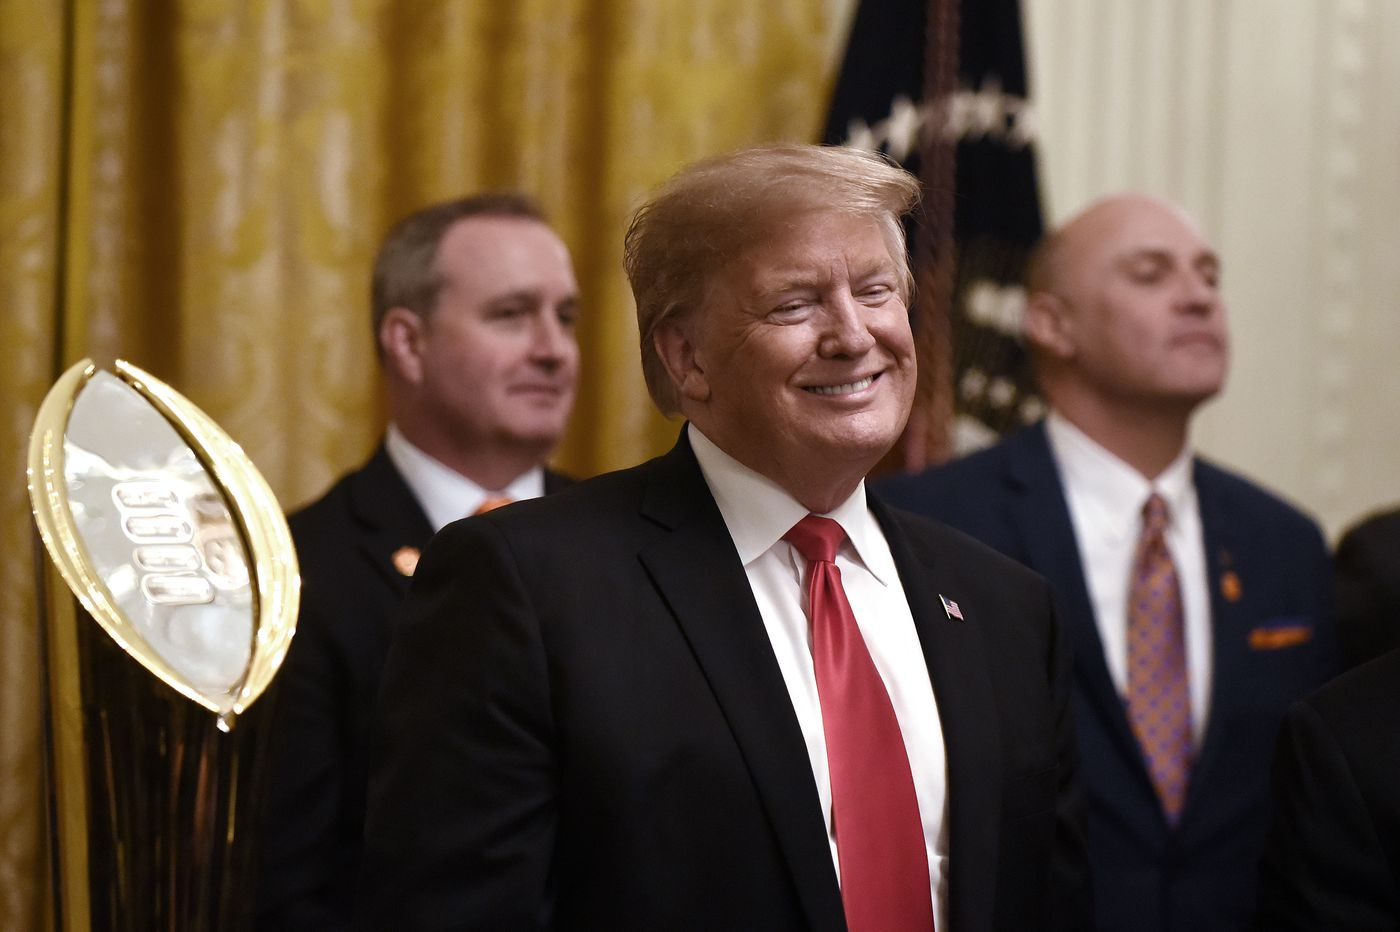 Trump orders thousands back to work without pay to blunt shutdown disruption